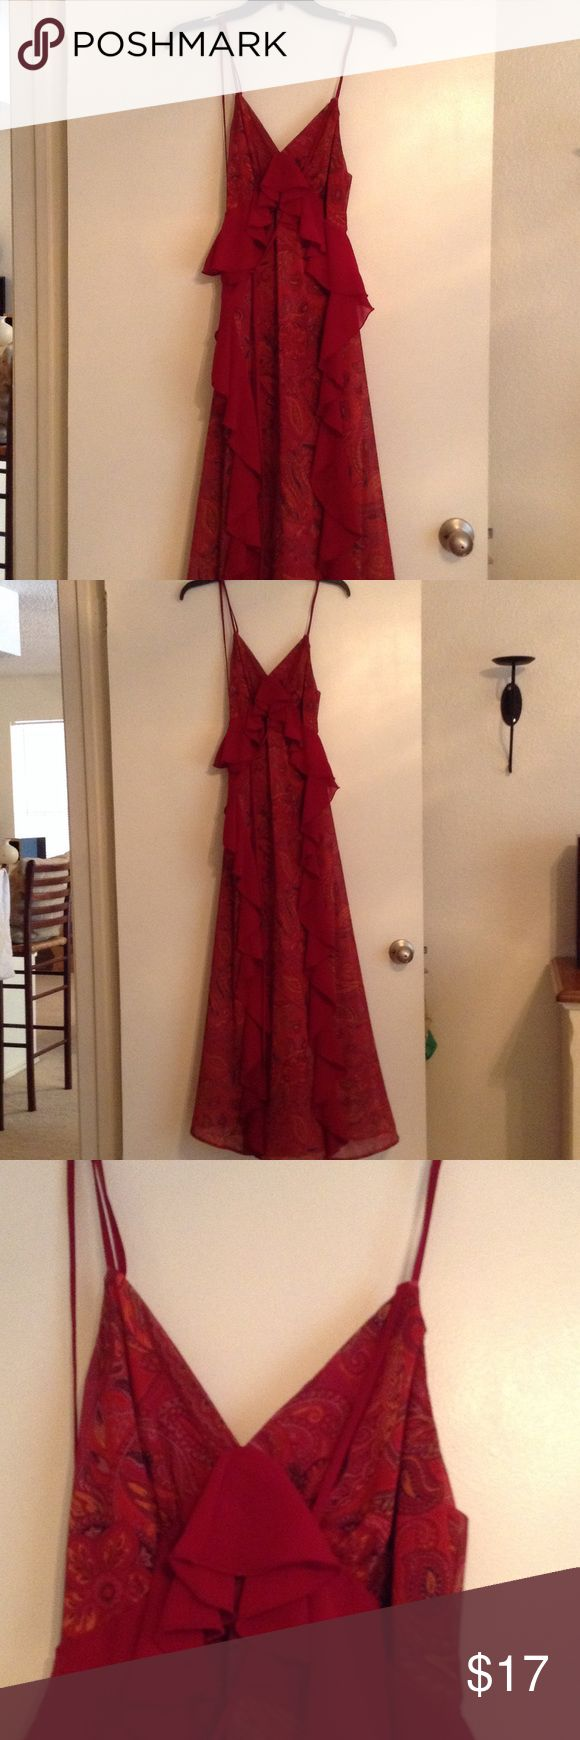 Red Paisley Ruffle Maxi Dress from Nasty Gal Beautiful ruffled dress from nasty gal. Soft chiffon material. I can model it, just won't be able to show the whole thing cuz I don't have a full length mirror. Offers welcome. Comment if you have any questions. Nasty Gal Dresses Maxi